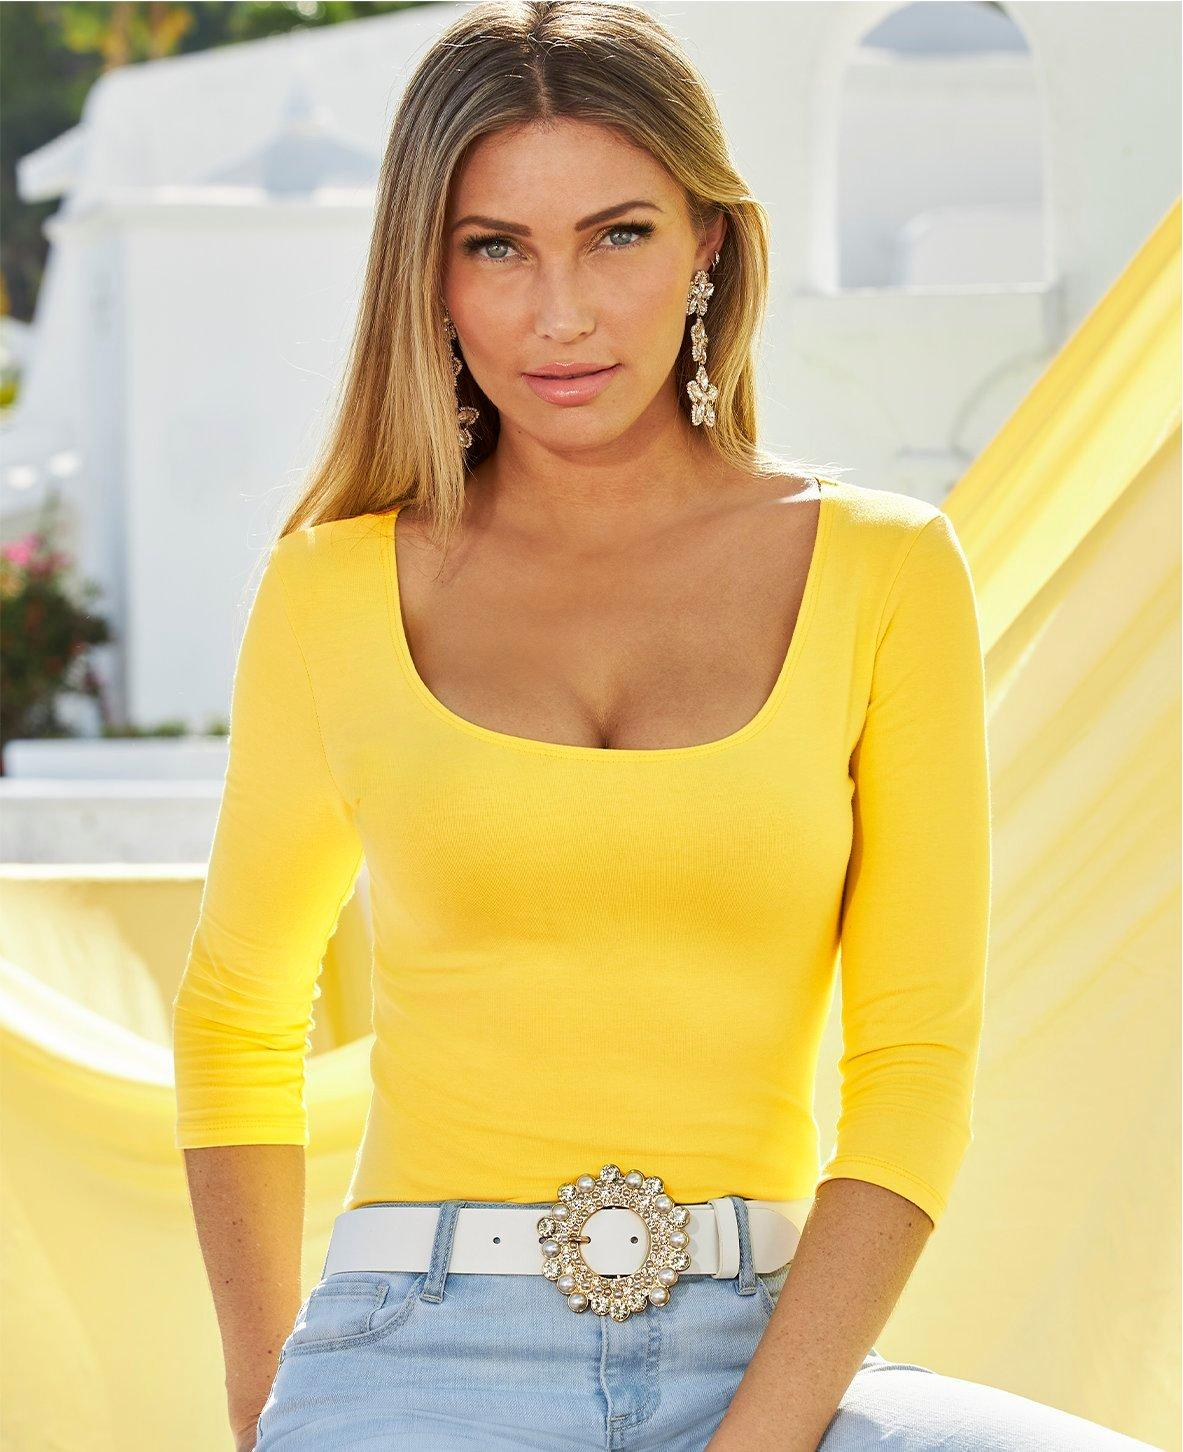 model wearing a yellow scoop neck three-quarter sleeve top, white jeweled belt, and light wash jeans.